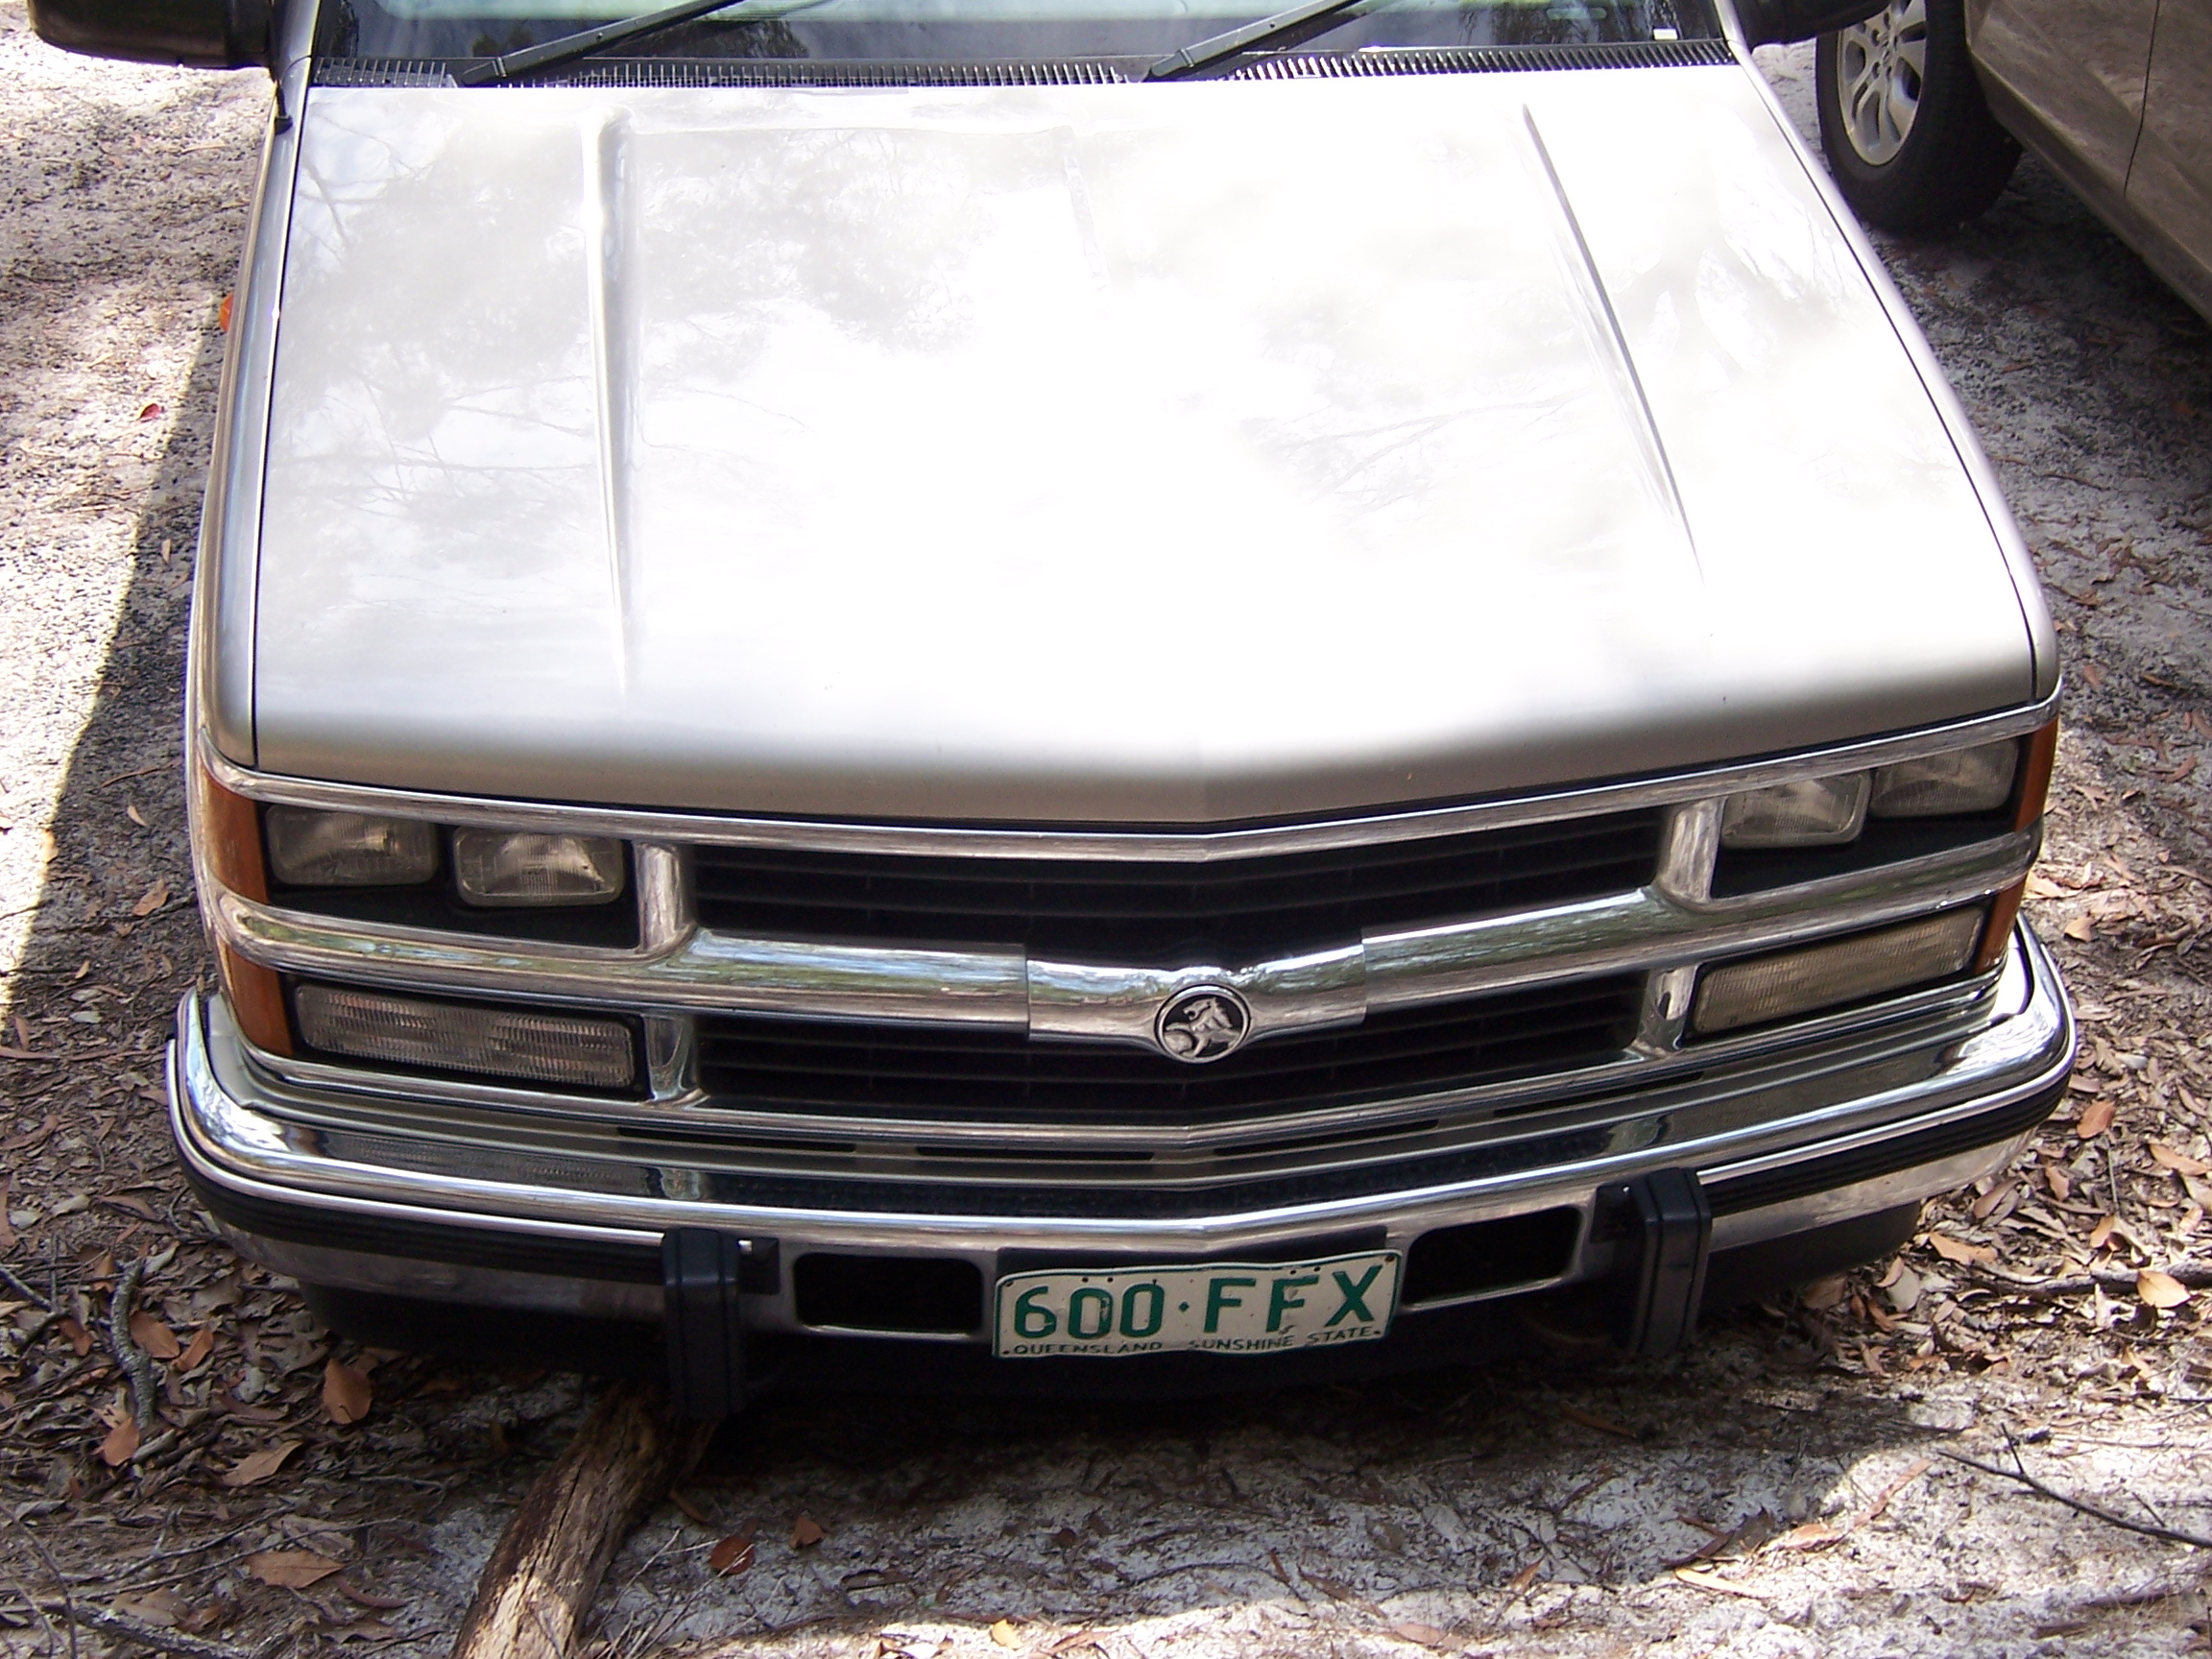 holden suburban images #4